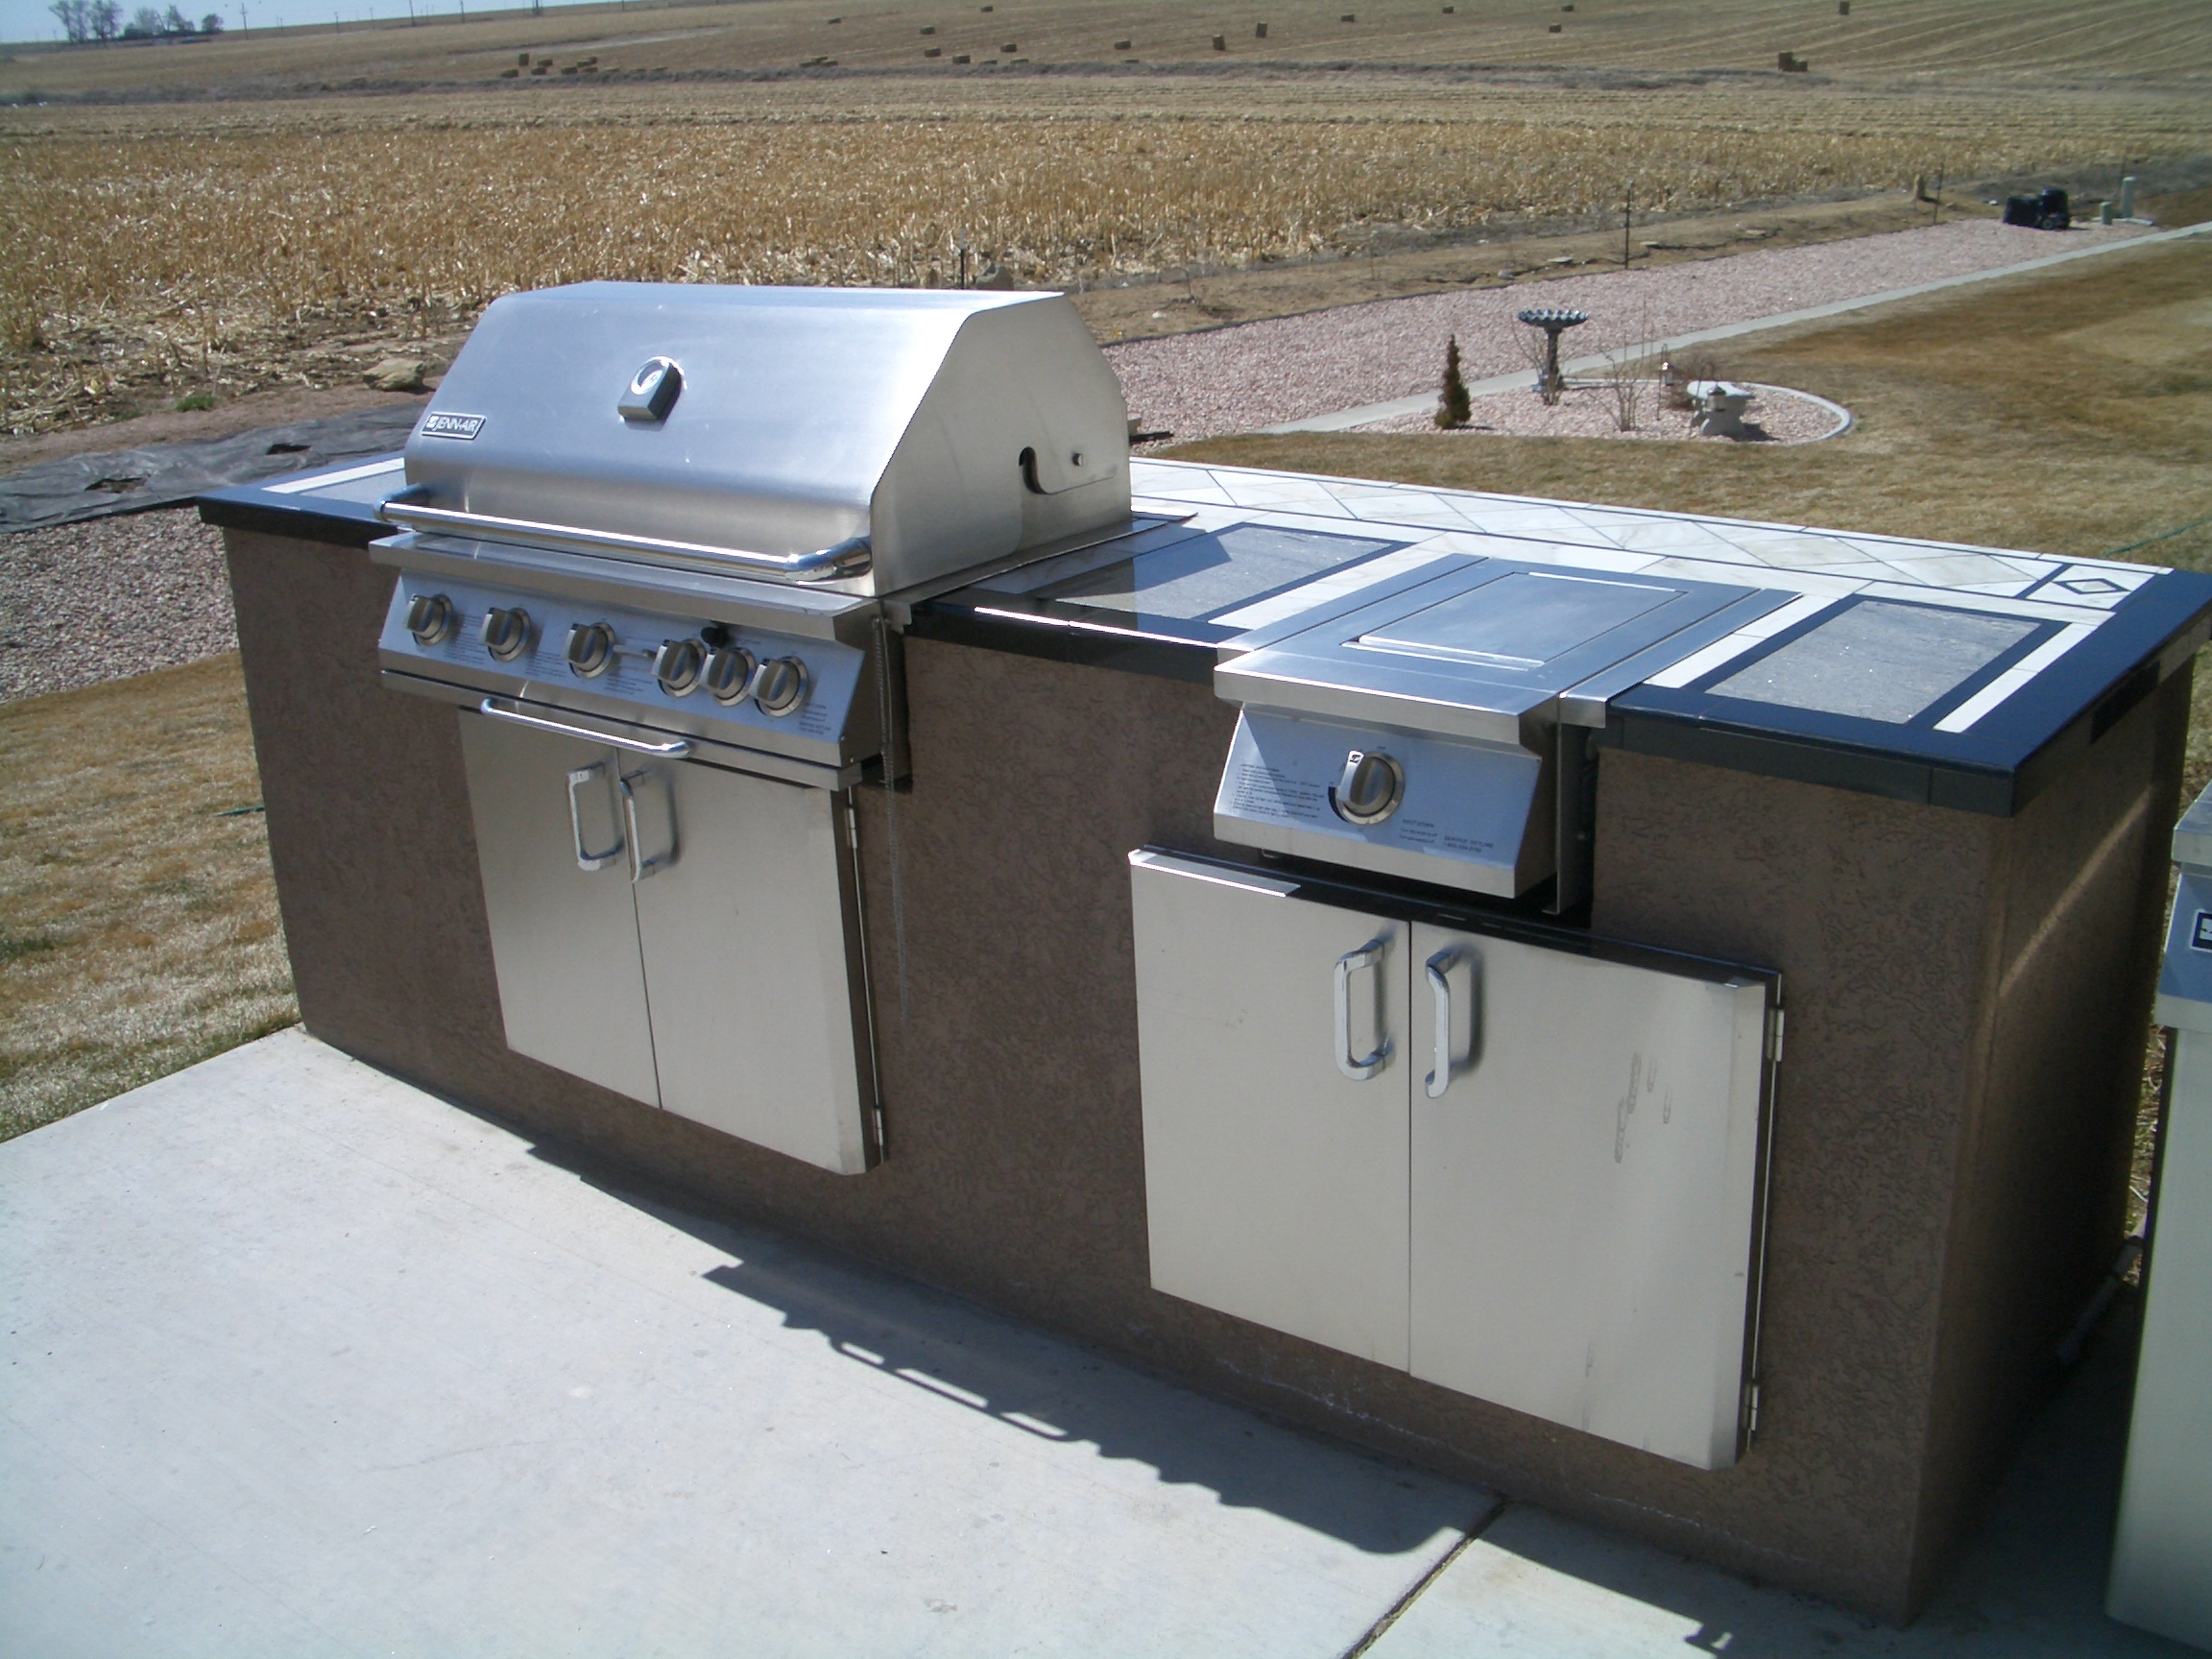 outdoor kitchens bbq islands outdoor kitchen island Backyard BBQ islands and outdoor kitchens in Fort Collins and Northern Colorado